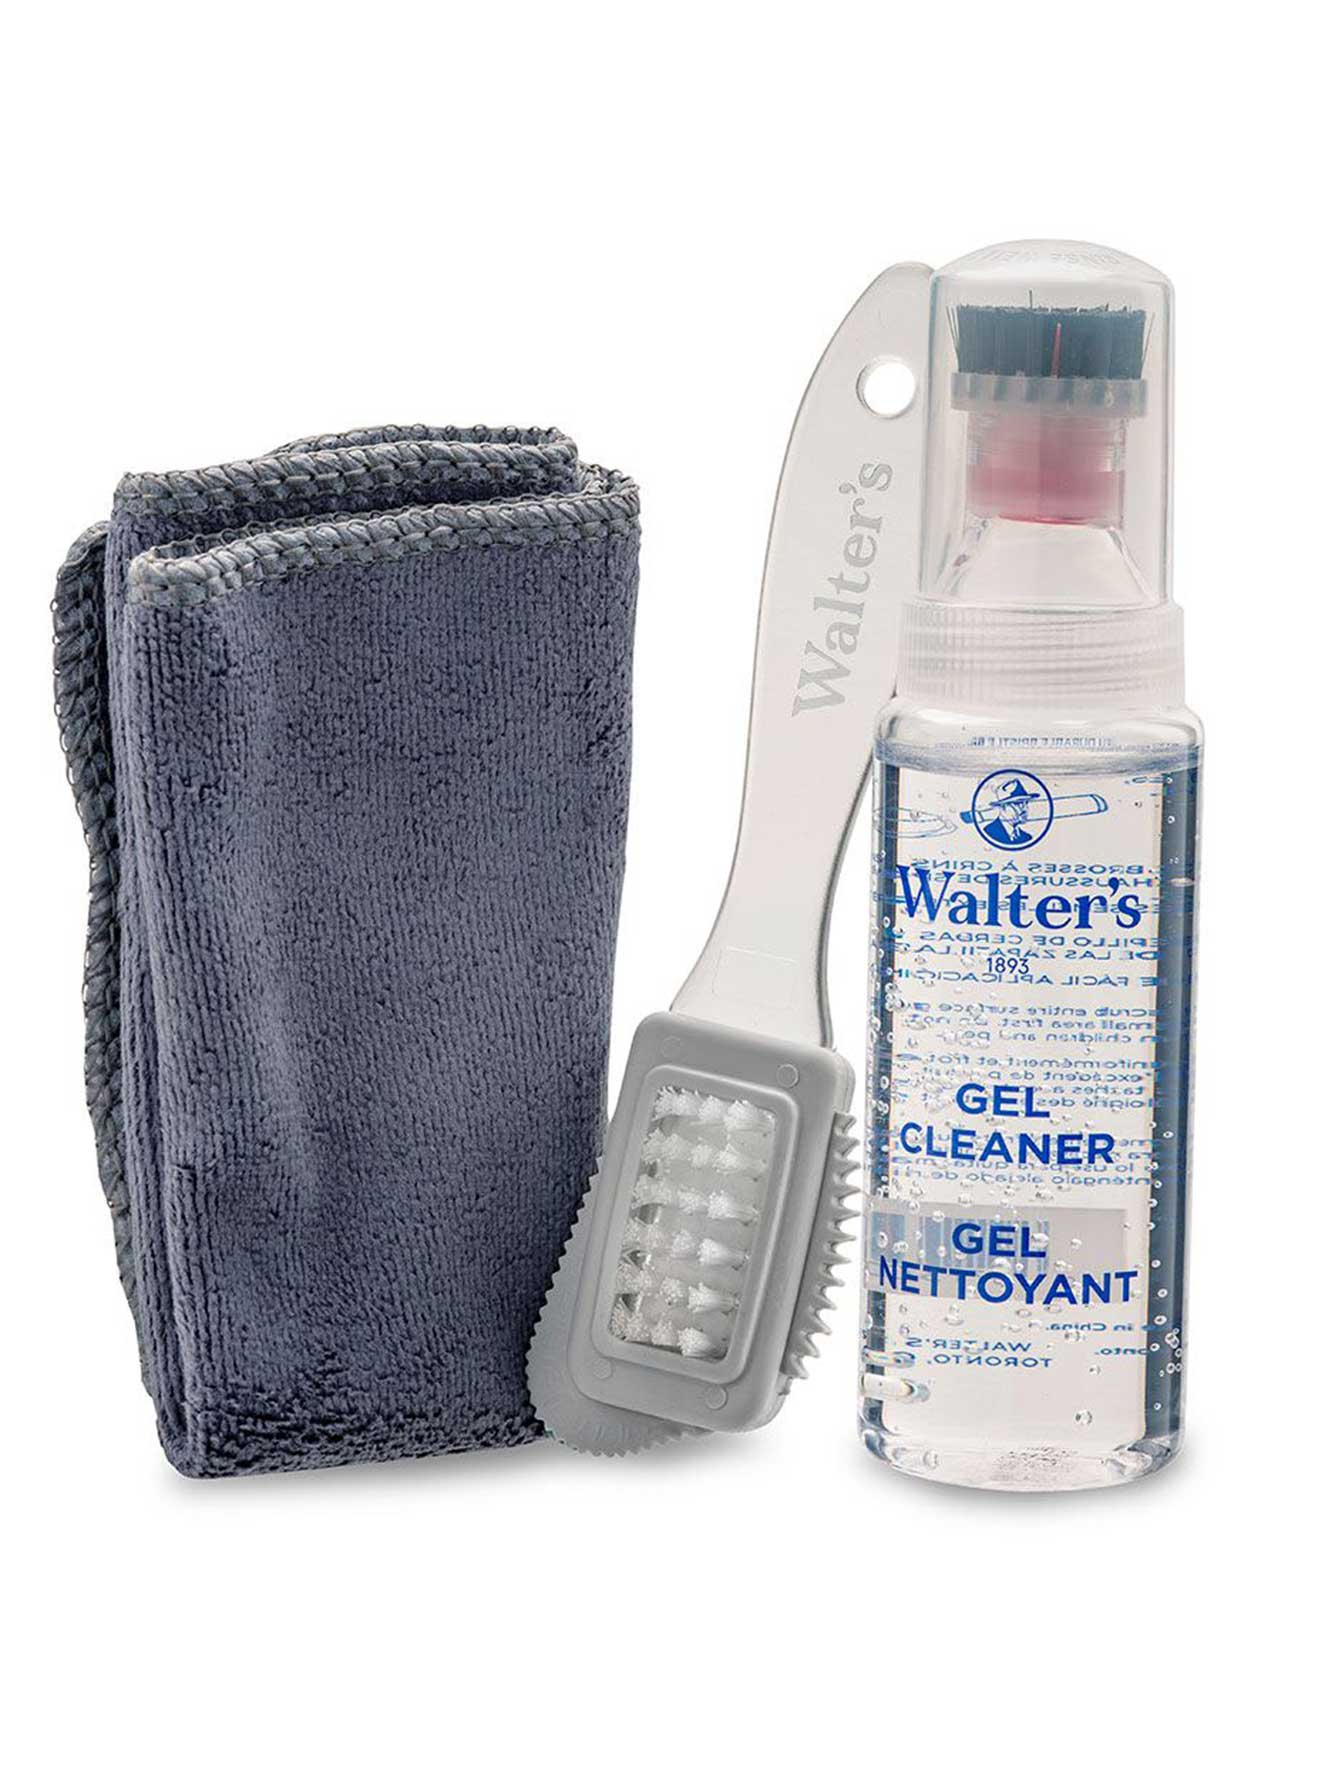 Sneaker Cleaner Kit - Walter's